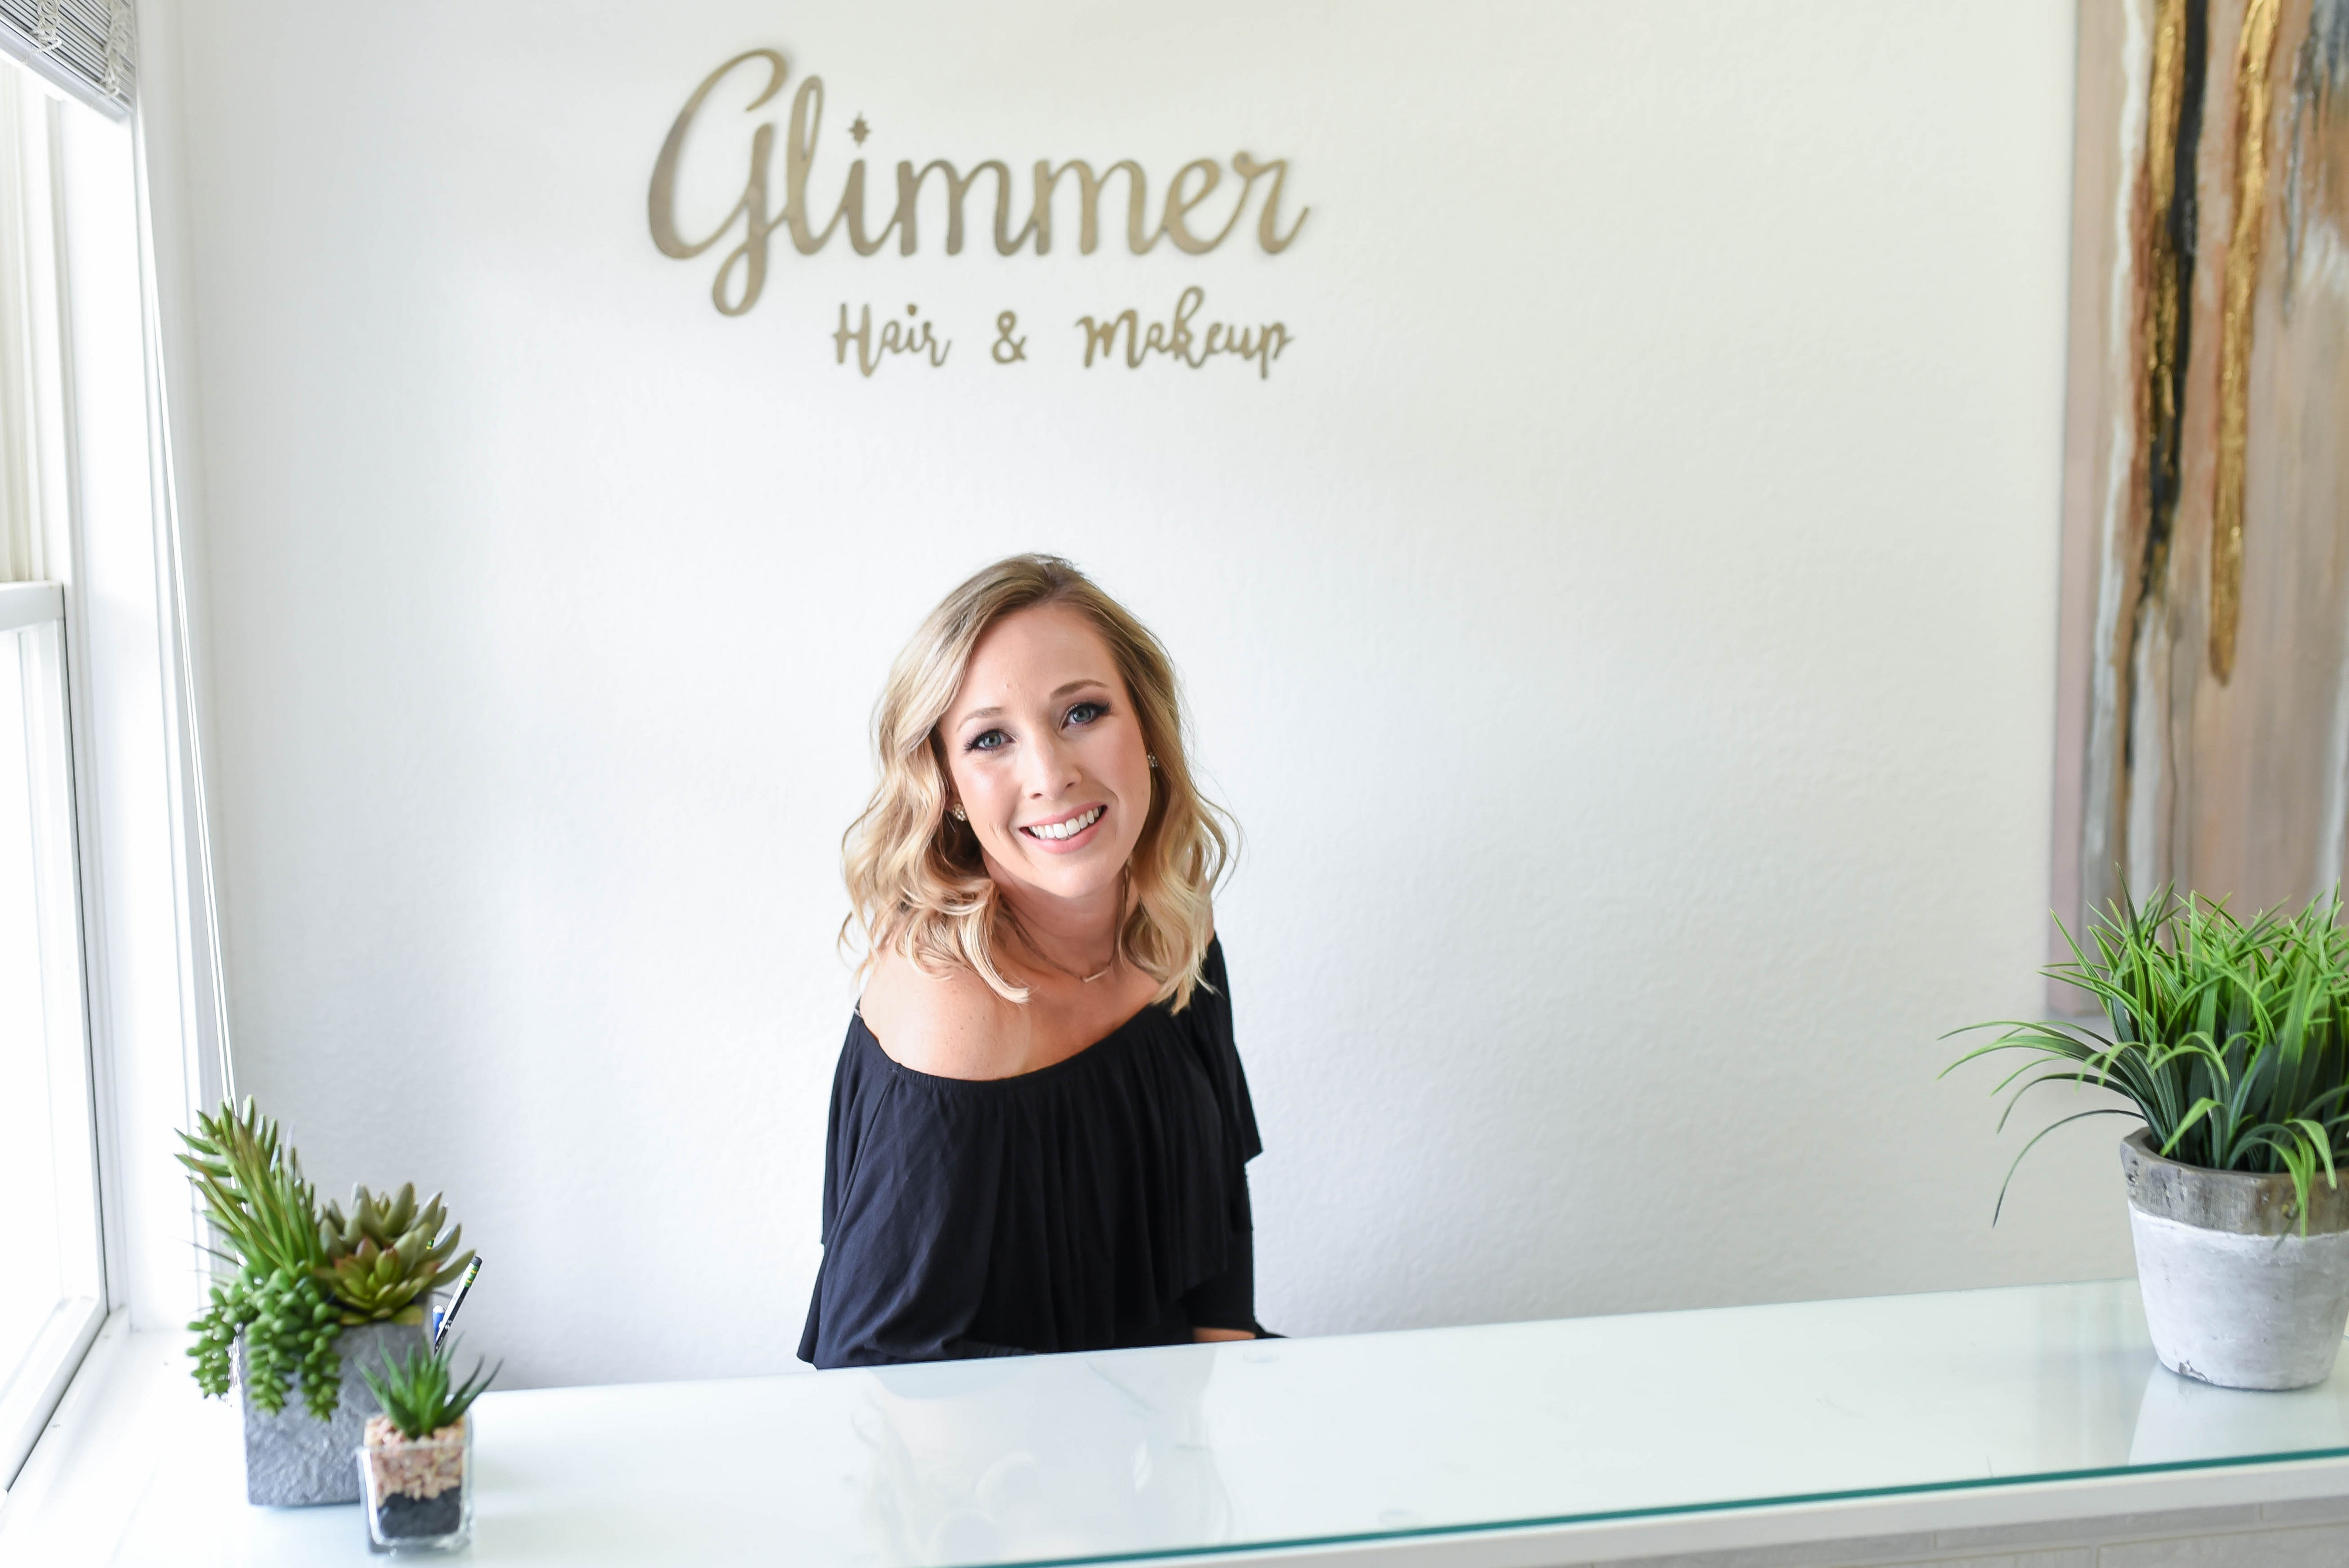 Glimmer Photo Shoot-Glimmer Photo Shoot-